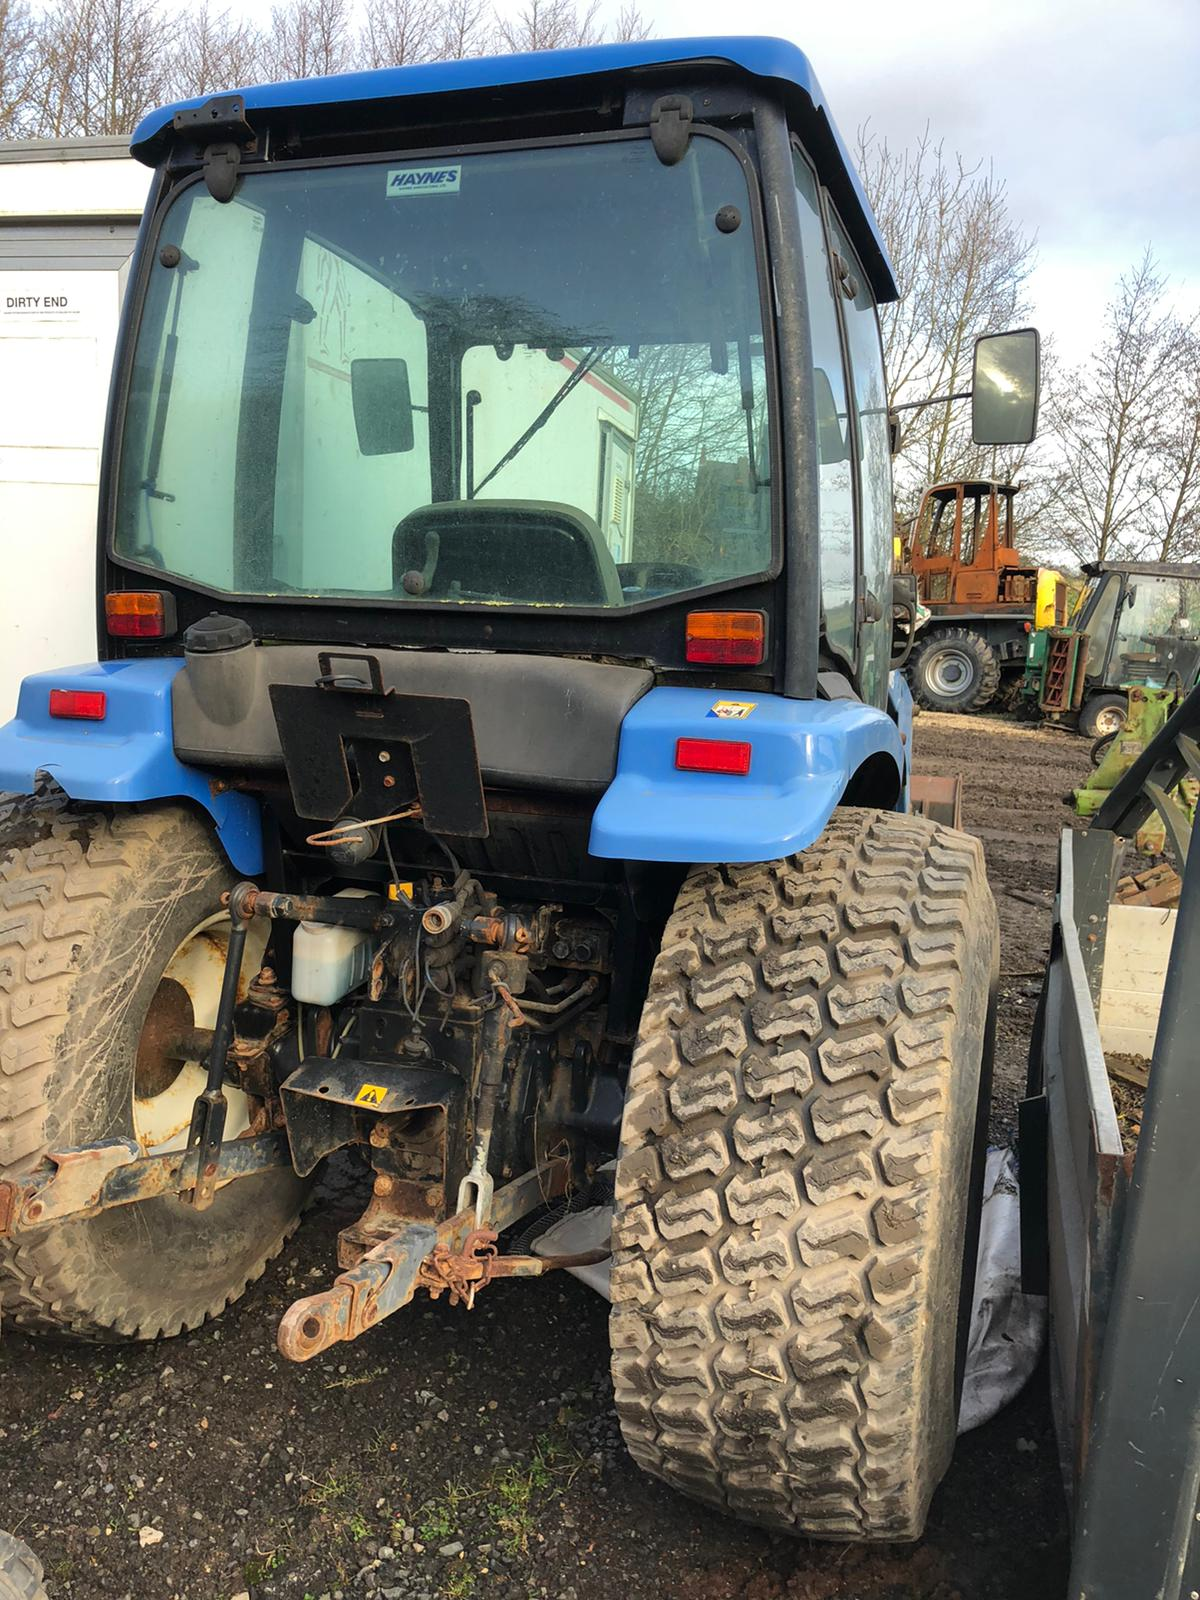 Lot 40 - NEW HOLLAND TS45D COMPACT TRACTOR BLUE, ENGINE TURNS WITH COMPRESSION BUT WONT FIRE, ONLY 1491 HOURS